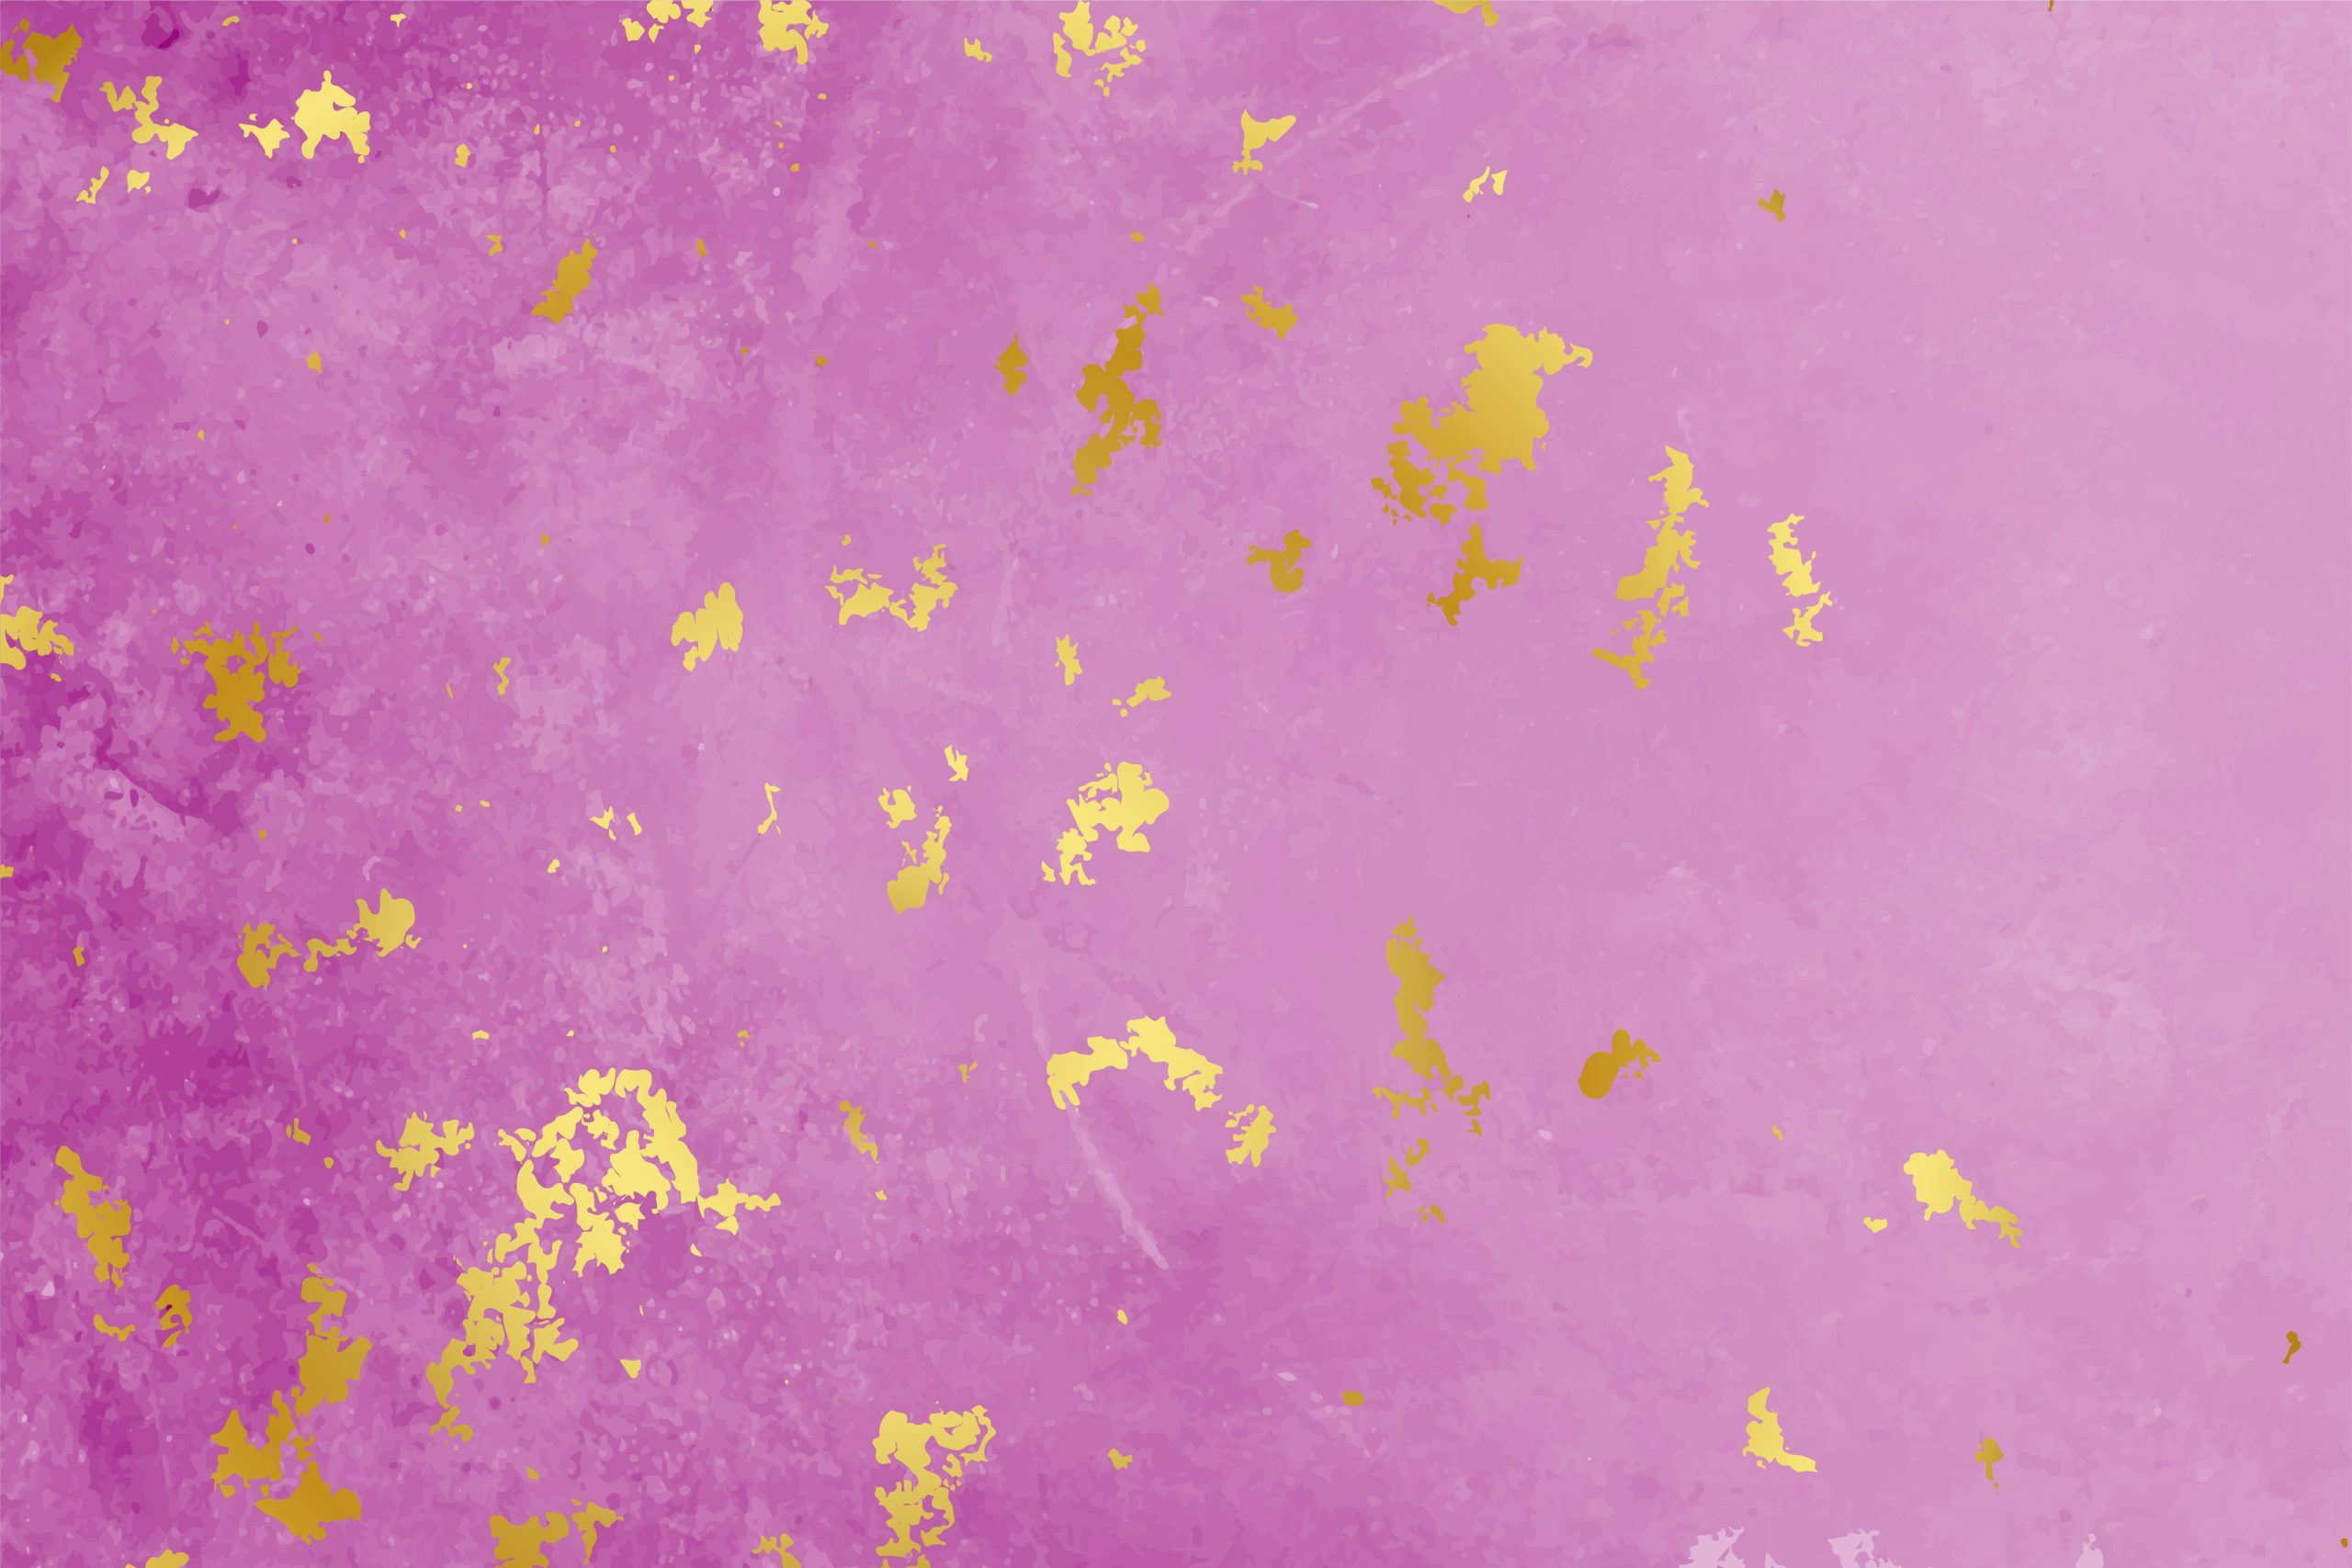 pink texture background with golden foil particles